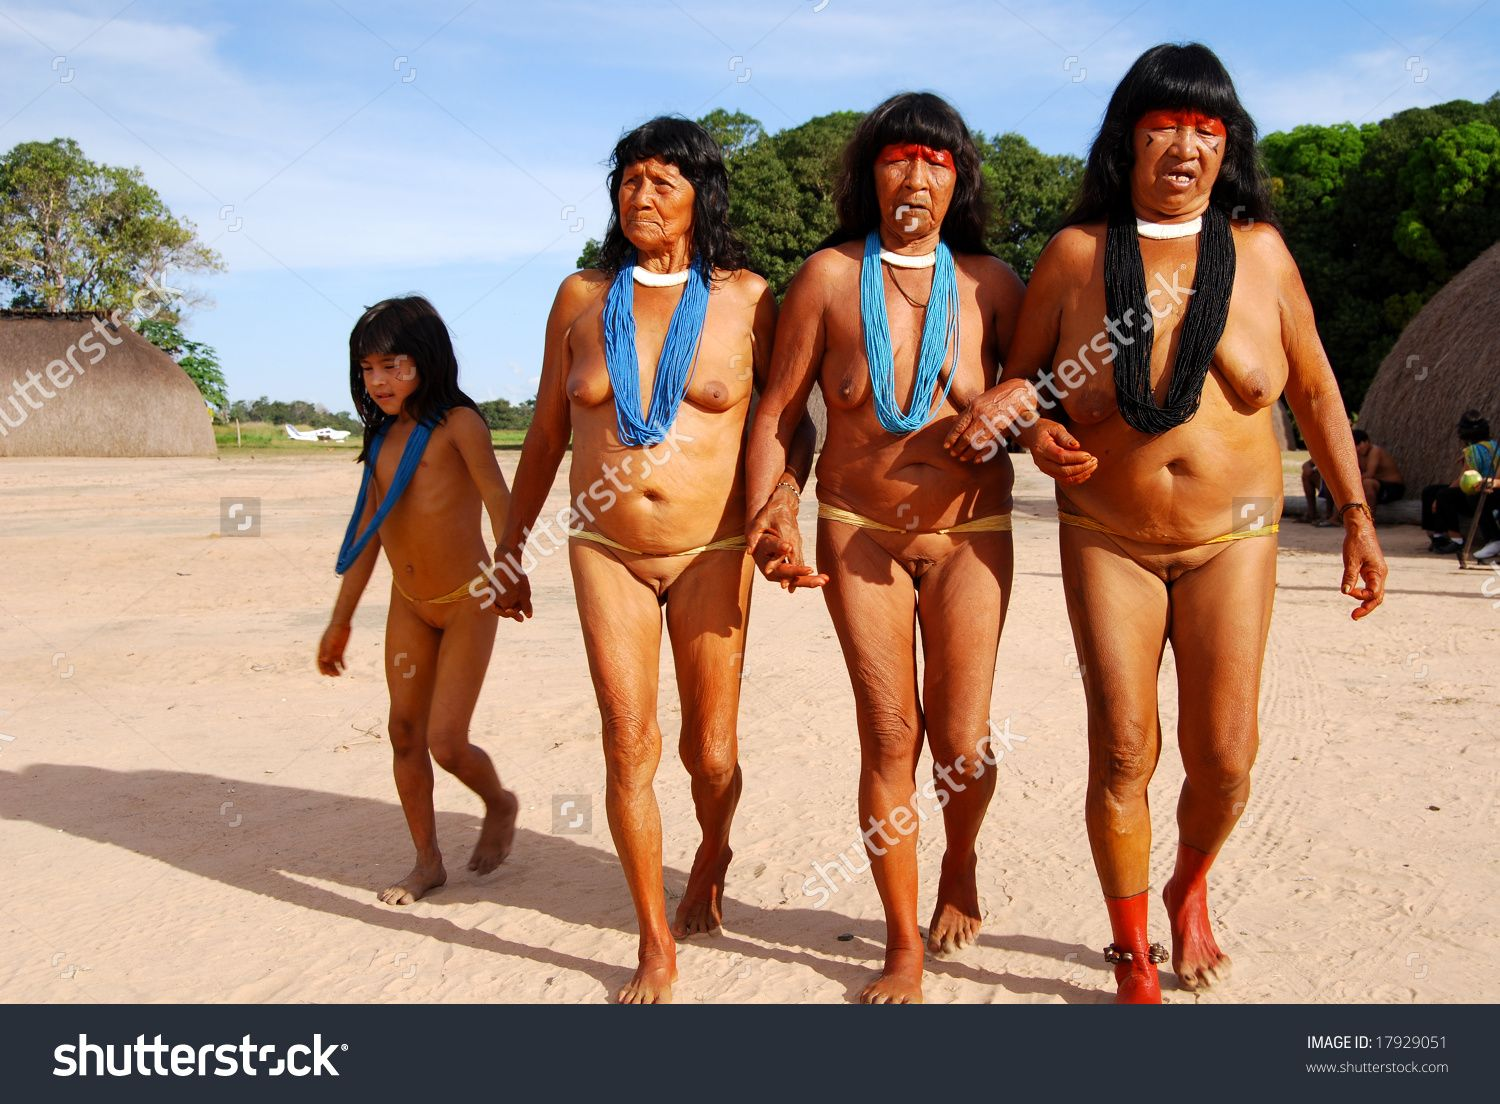 xingu women Xingu tribe in Brazil: 2 тыс изображений найдено в Яндекс.Картинках